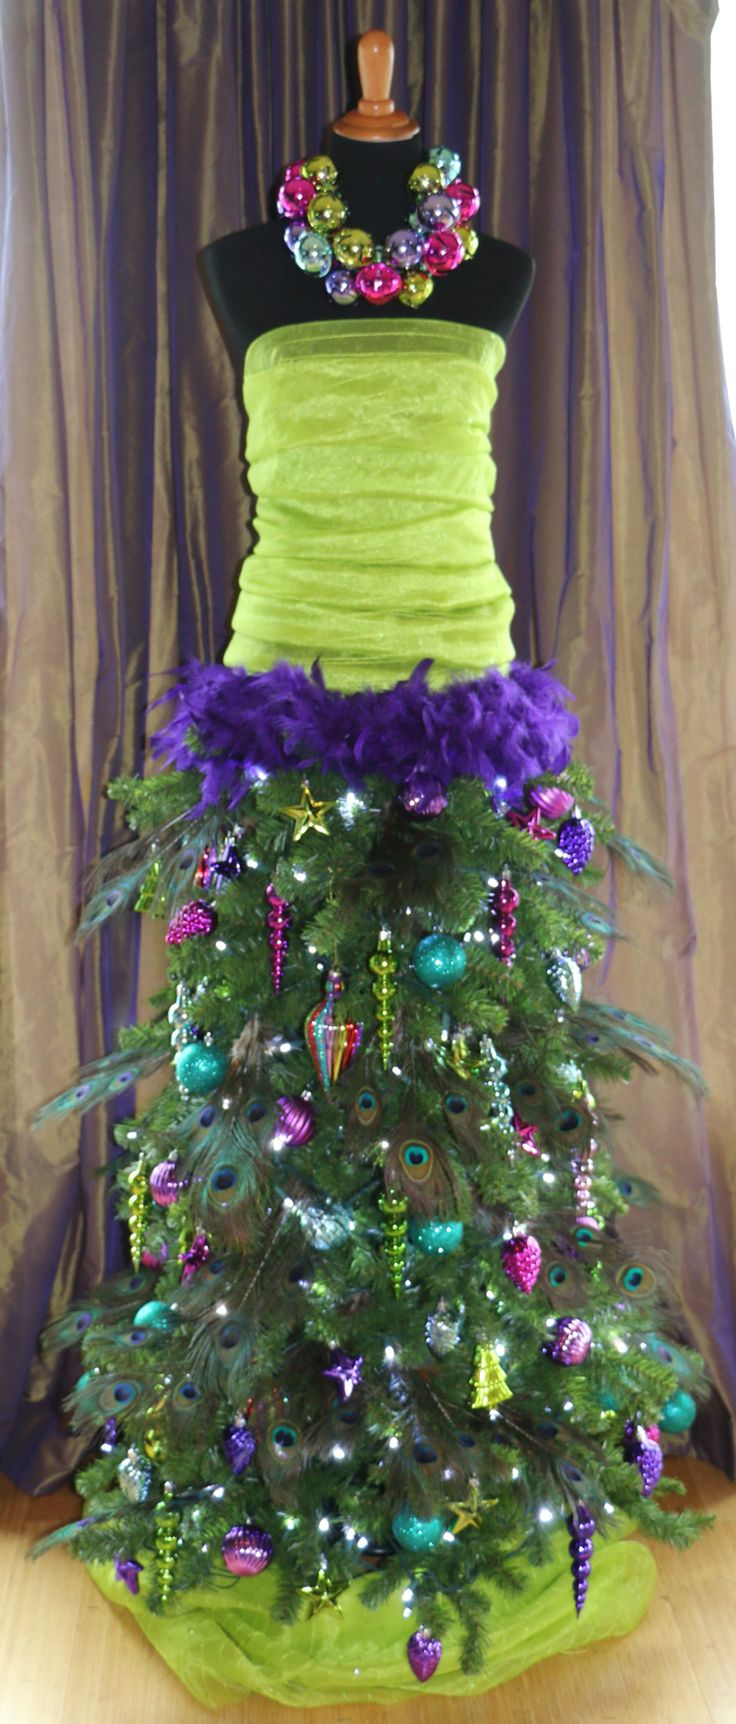 Dress Form Christmas Tree.Cristhmas Tree Decorations Ideas Dress Form Christmas Tree